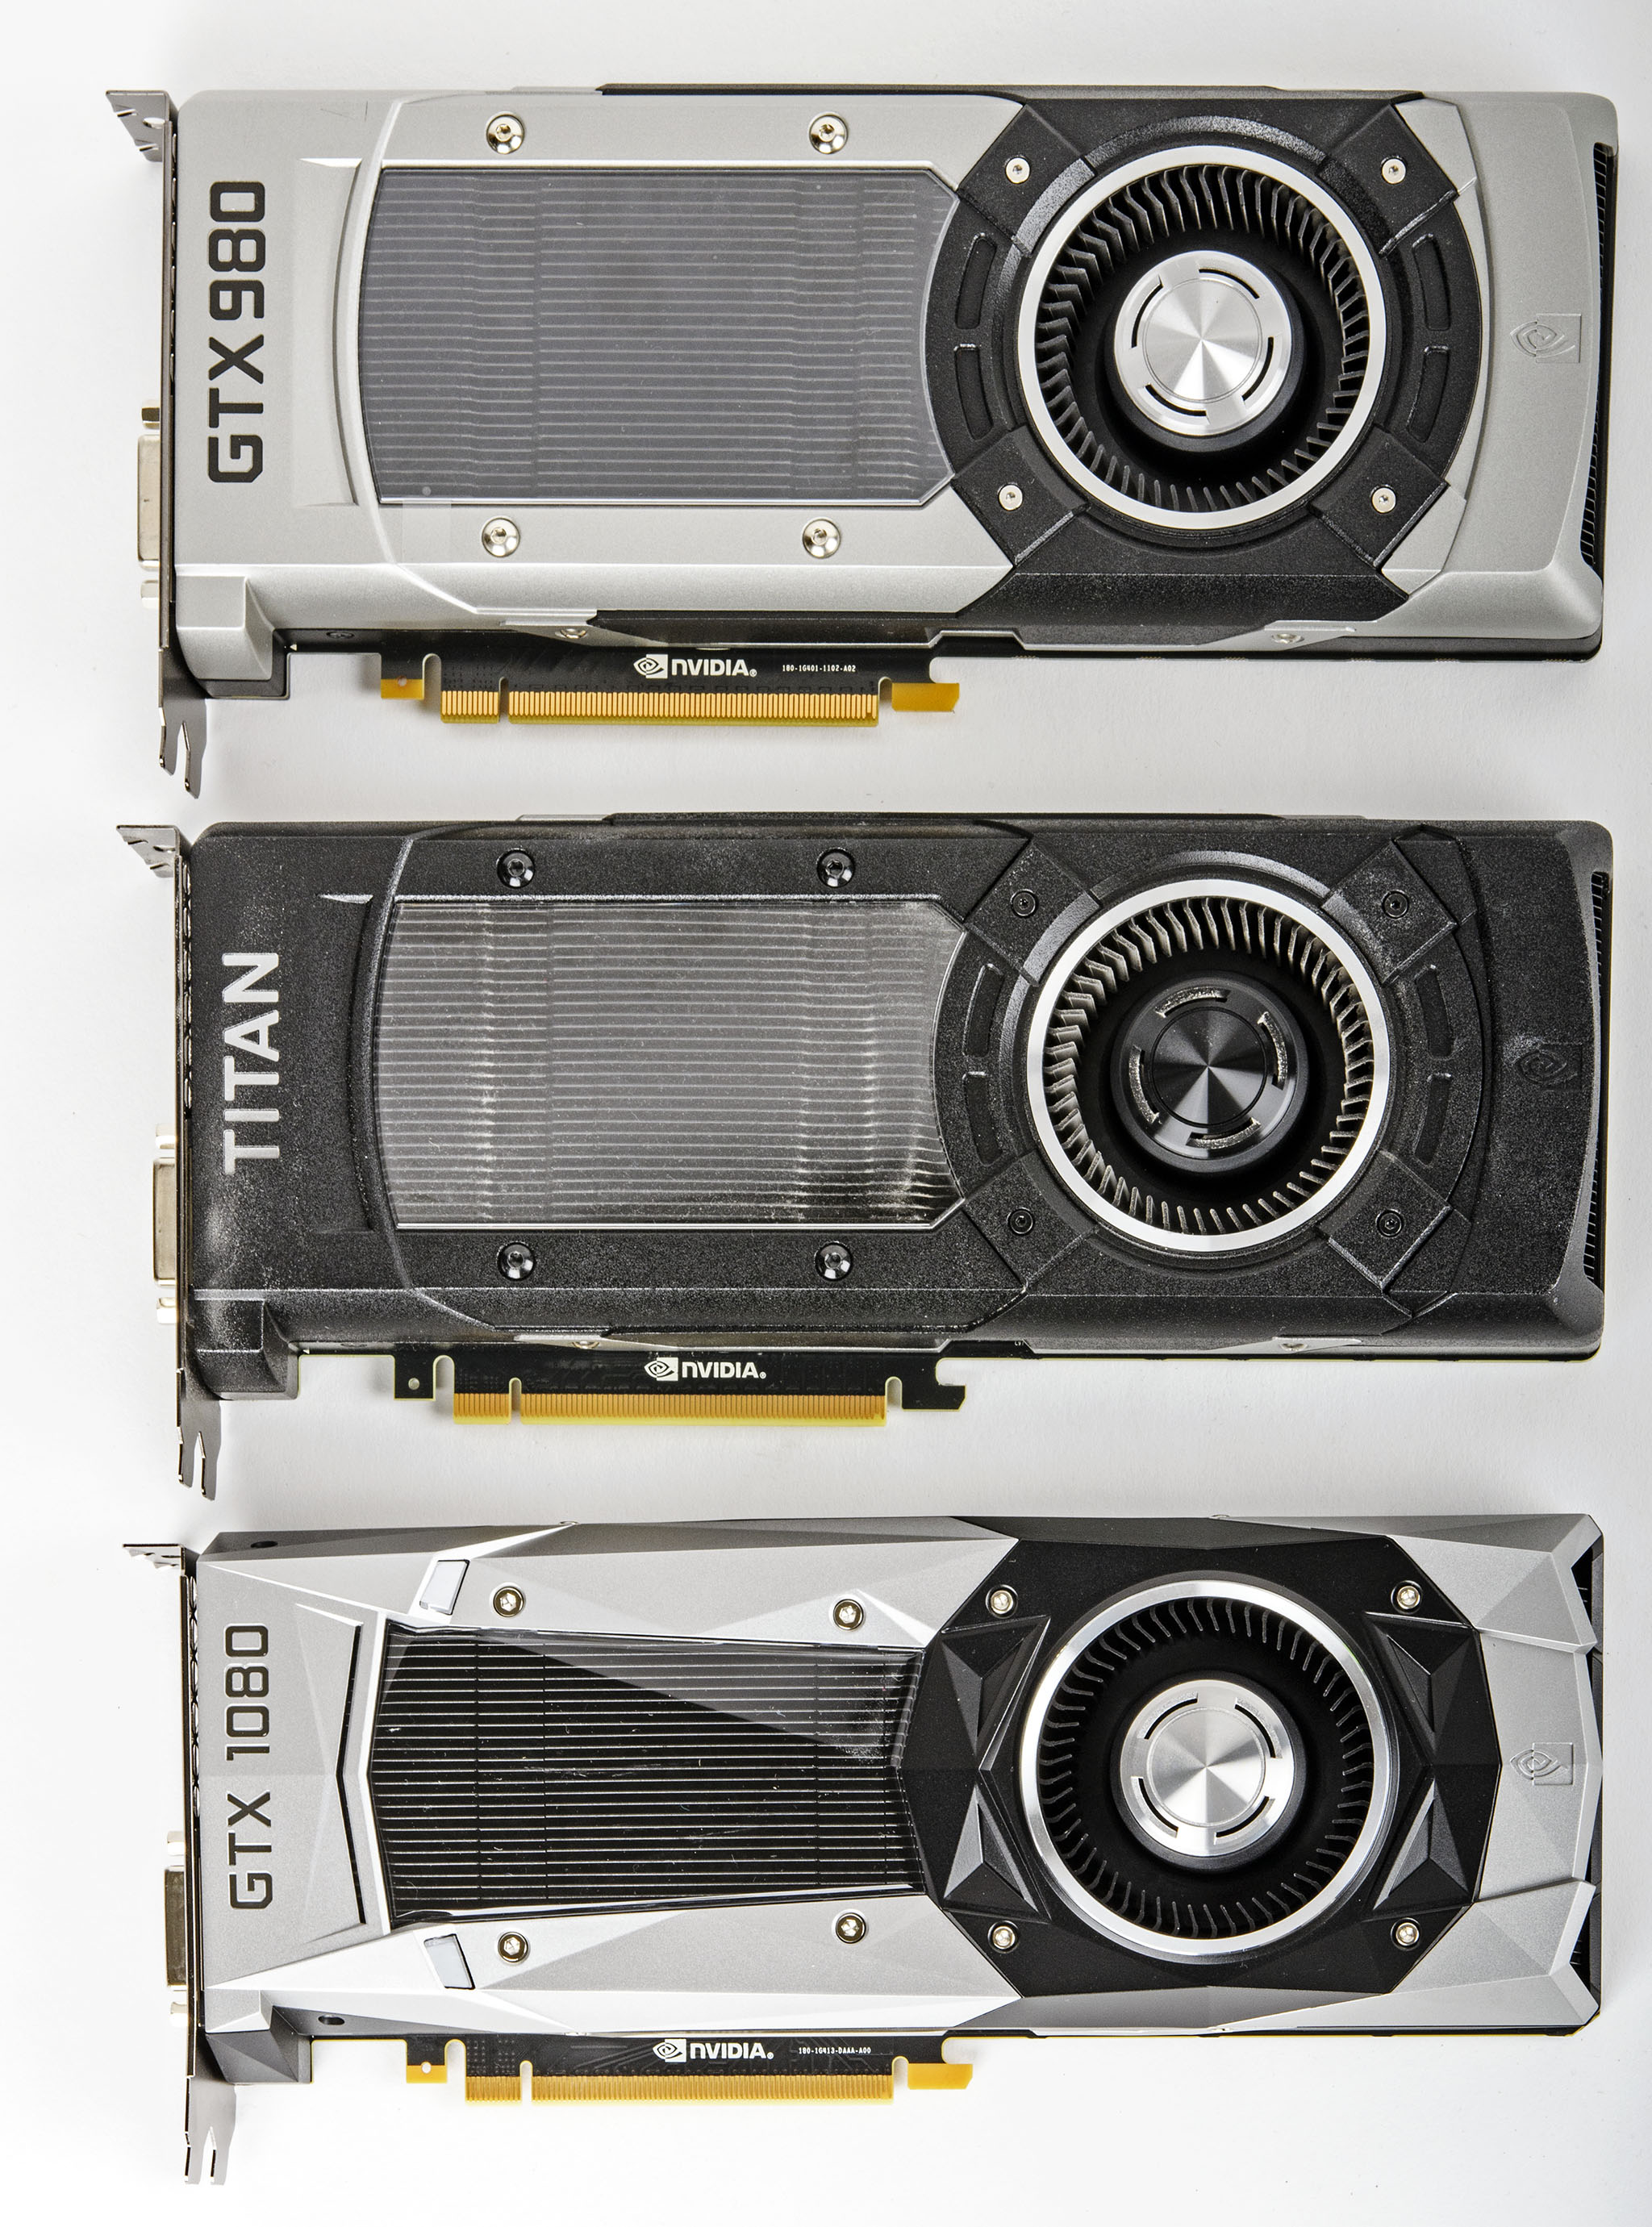 Tested: Nvidia GeForce GTX 1080 Video Card - Tested